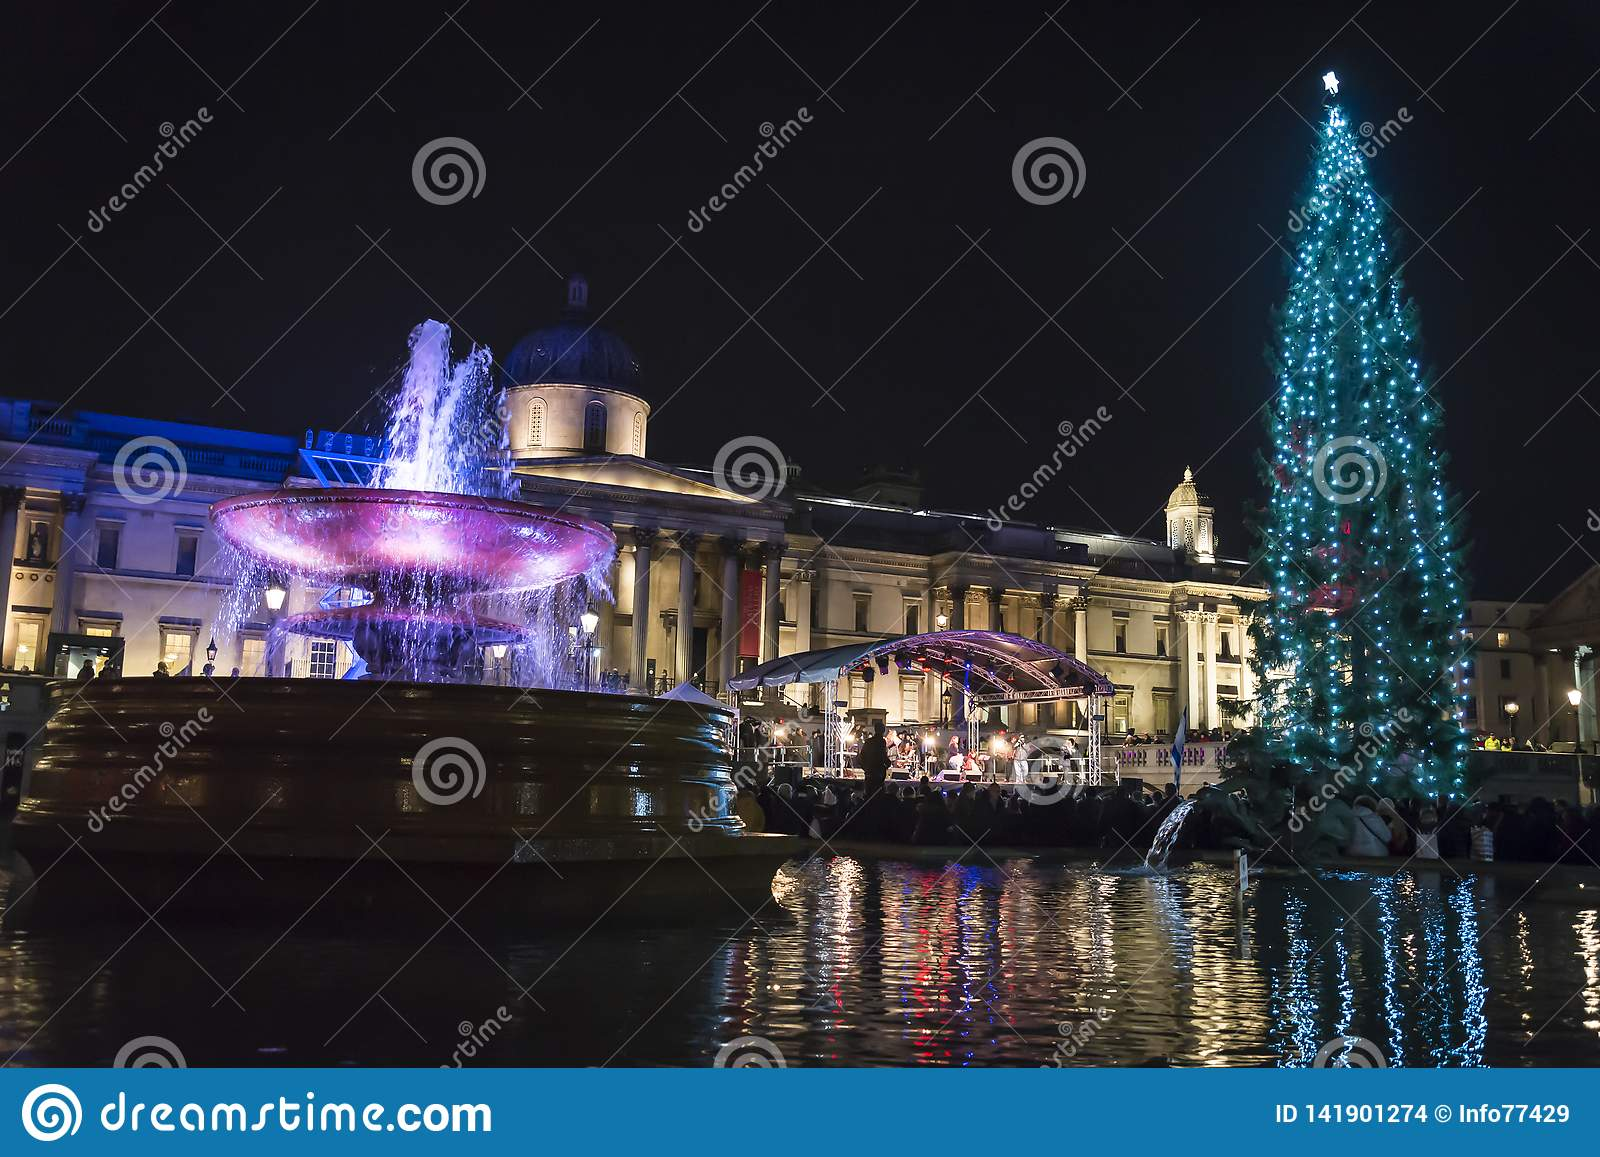 Christmas tree, Trafalgar Square at night, Westminster, London, England, UK